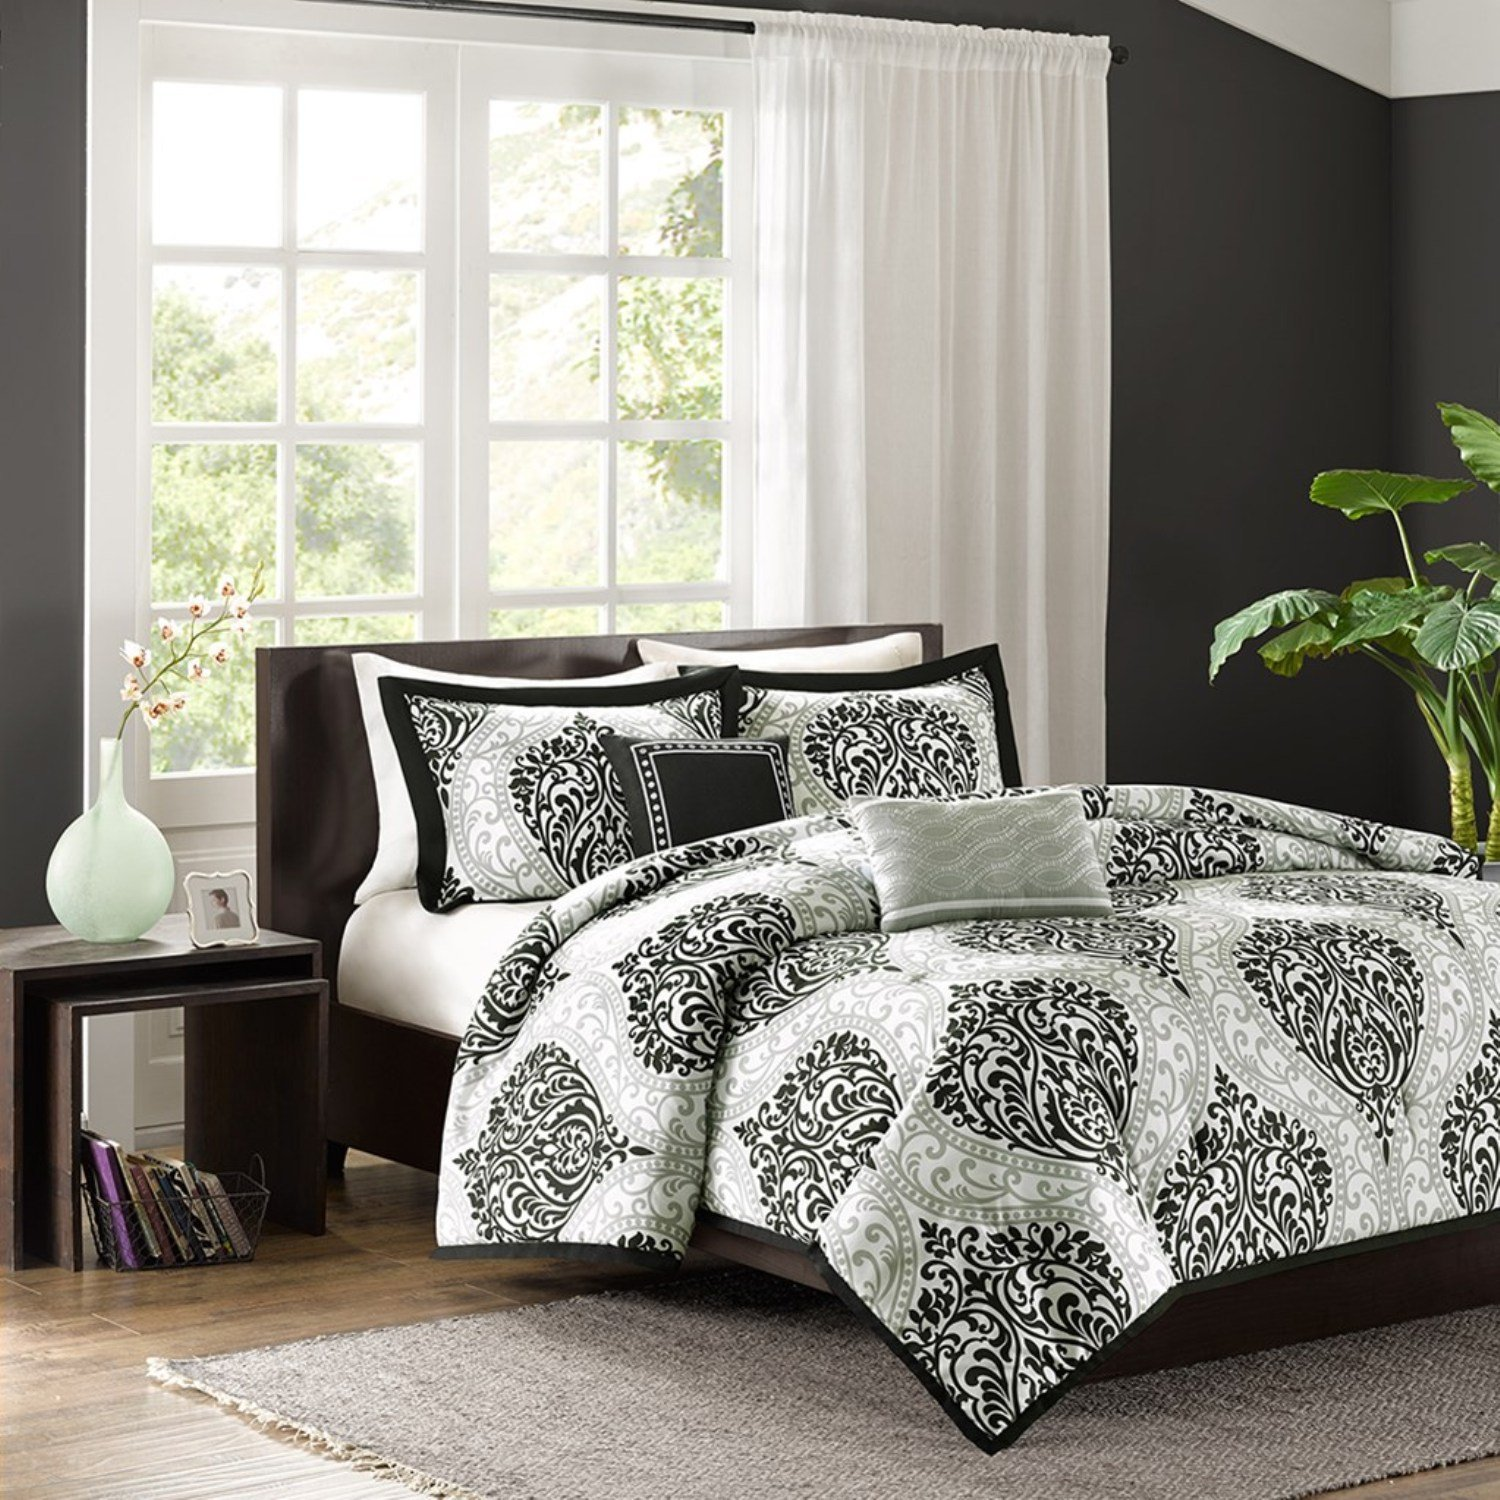 5 Piece Comforter Set, Full/Queen, Black